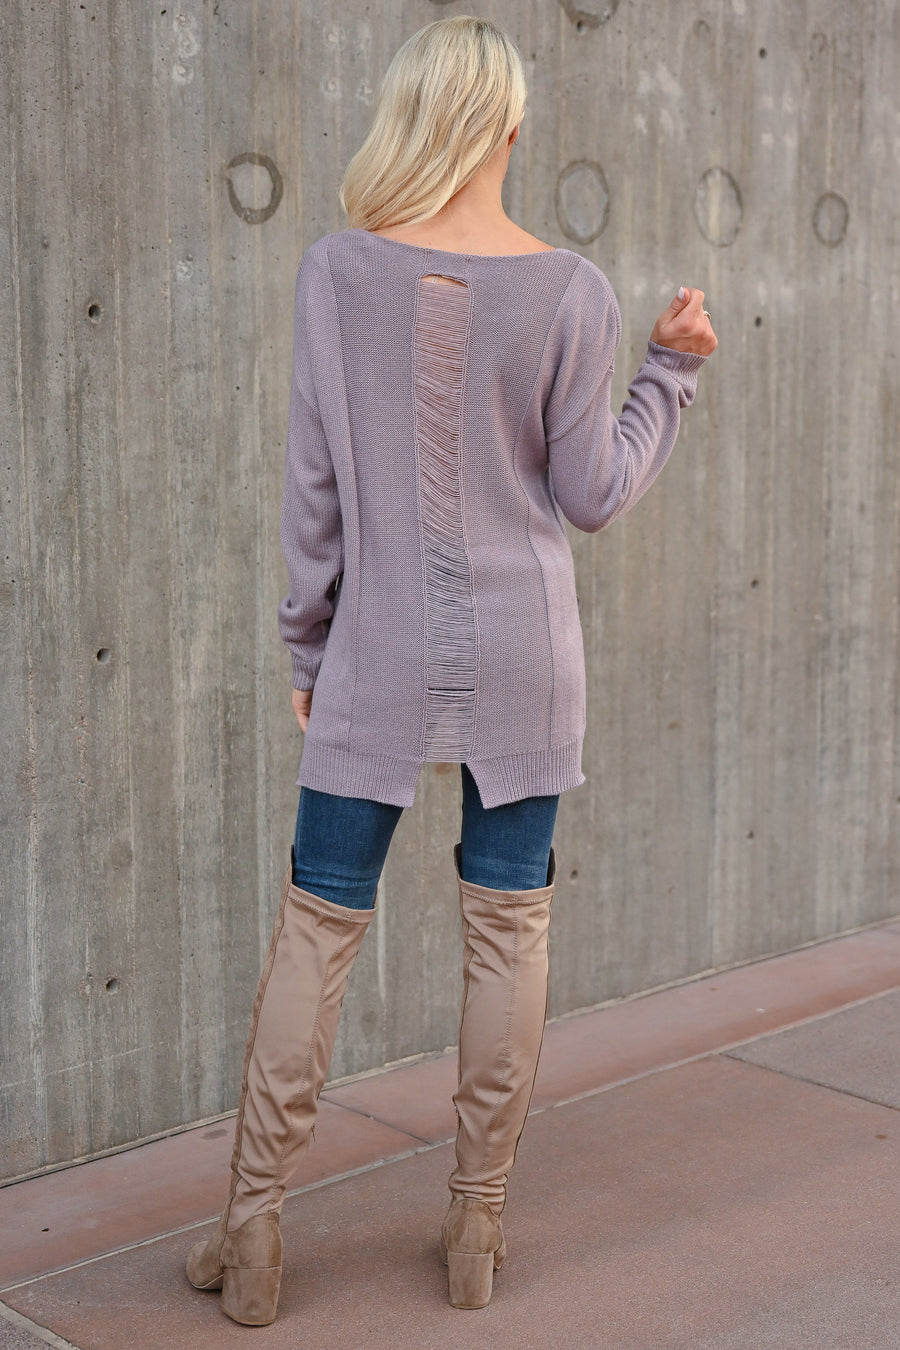 What You've Got Sweater - Lavender womens trendy long sleeve v-neck front pocket sweater closet candy front